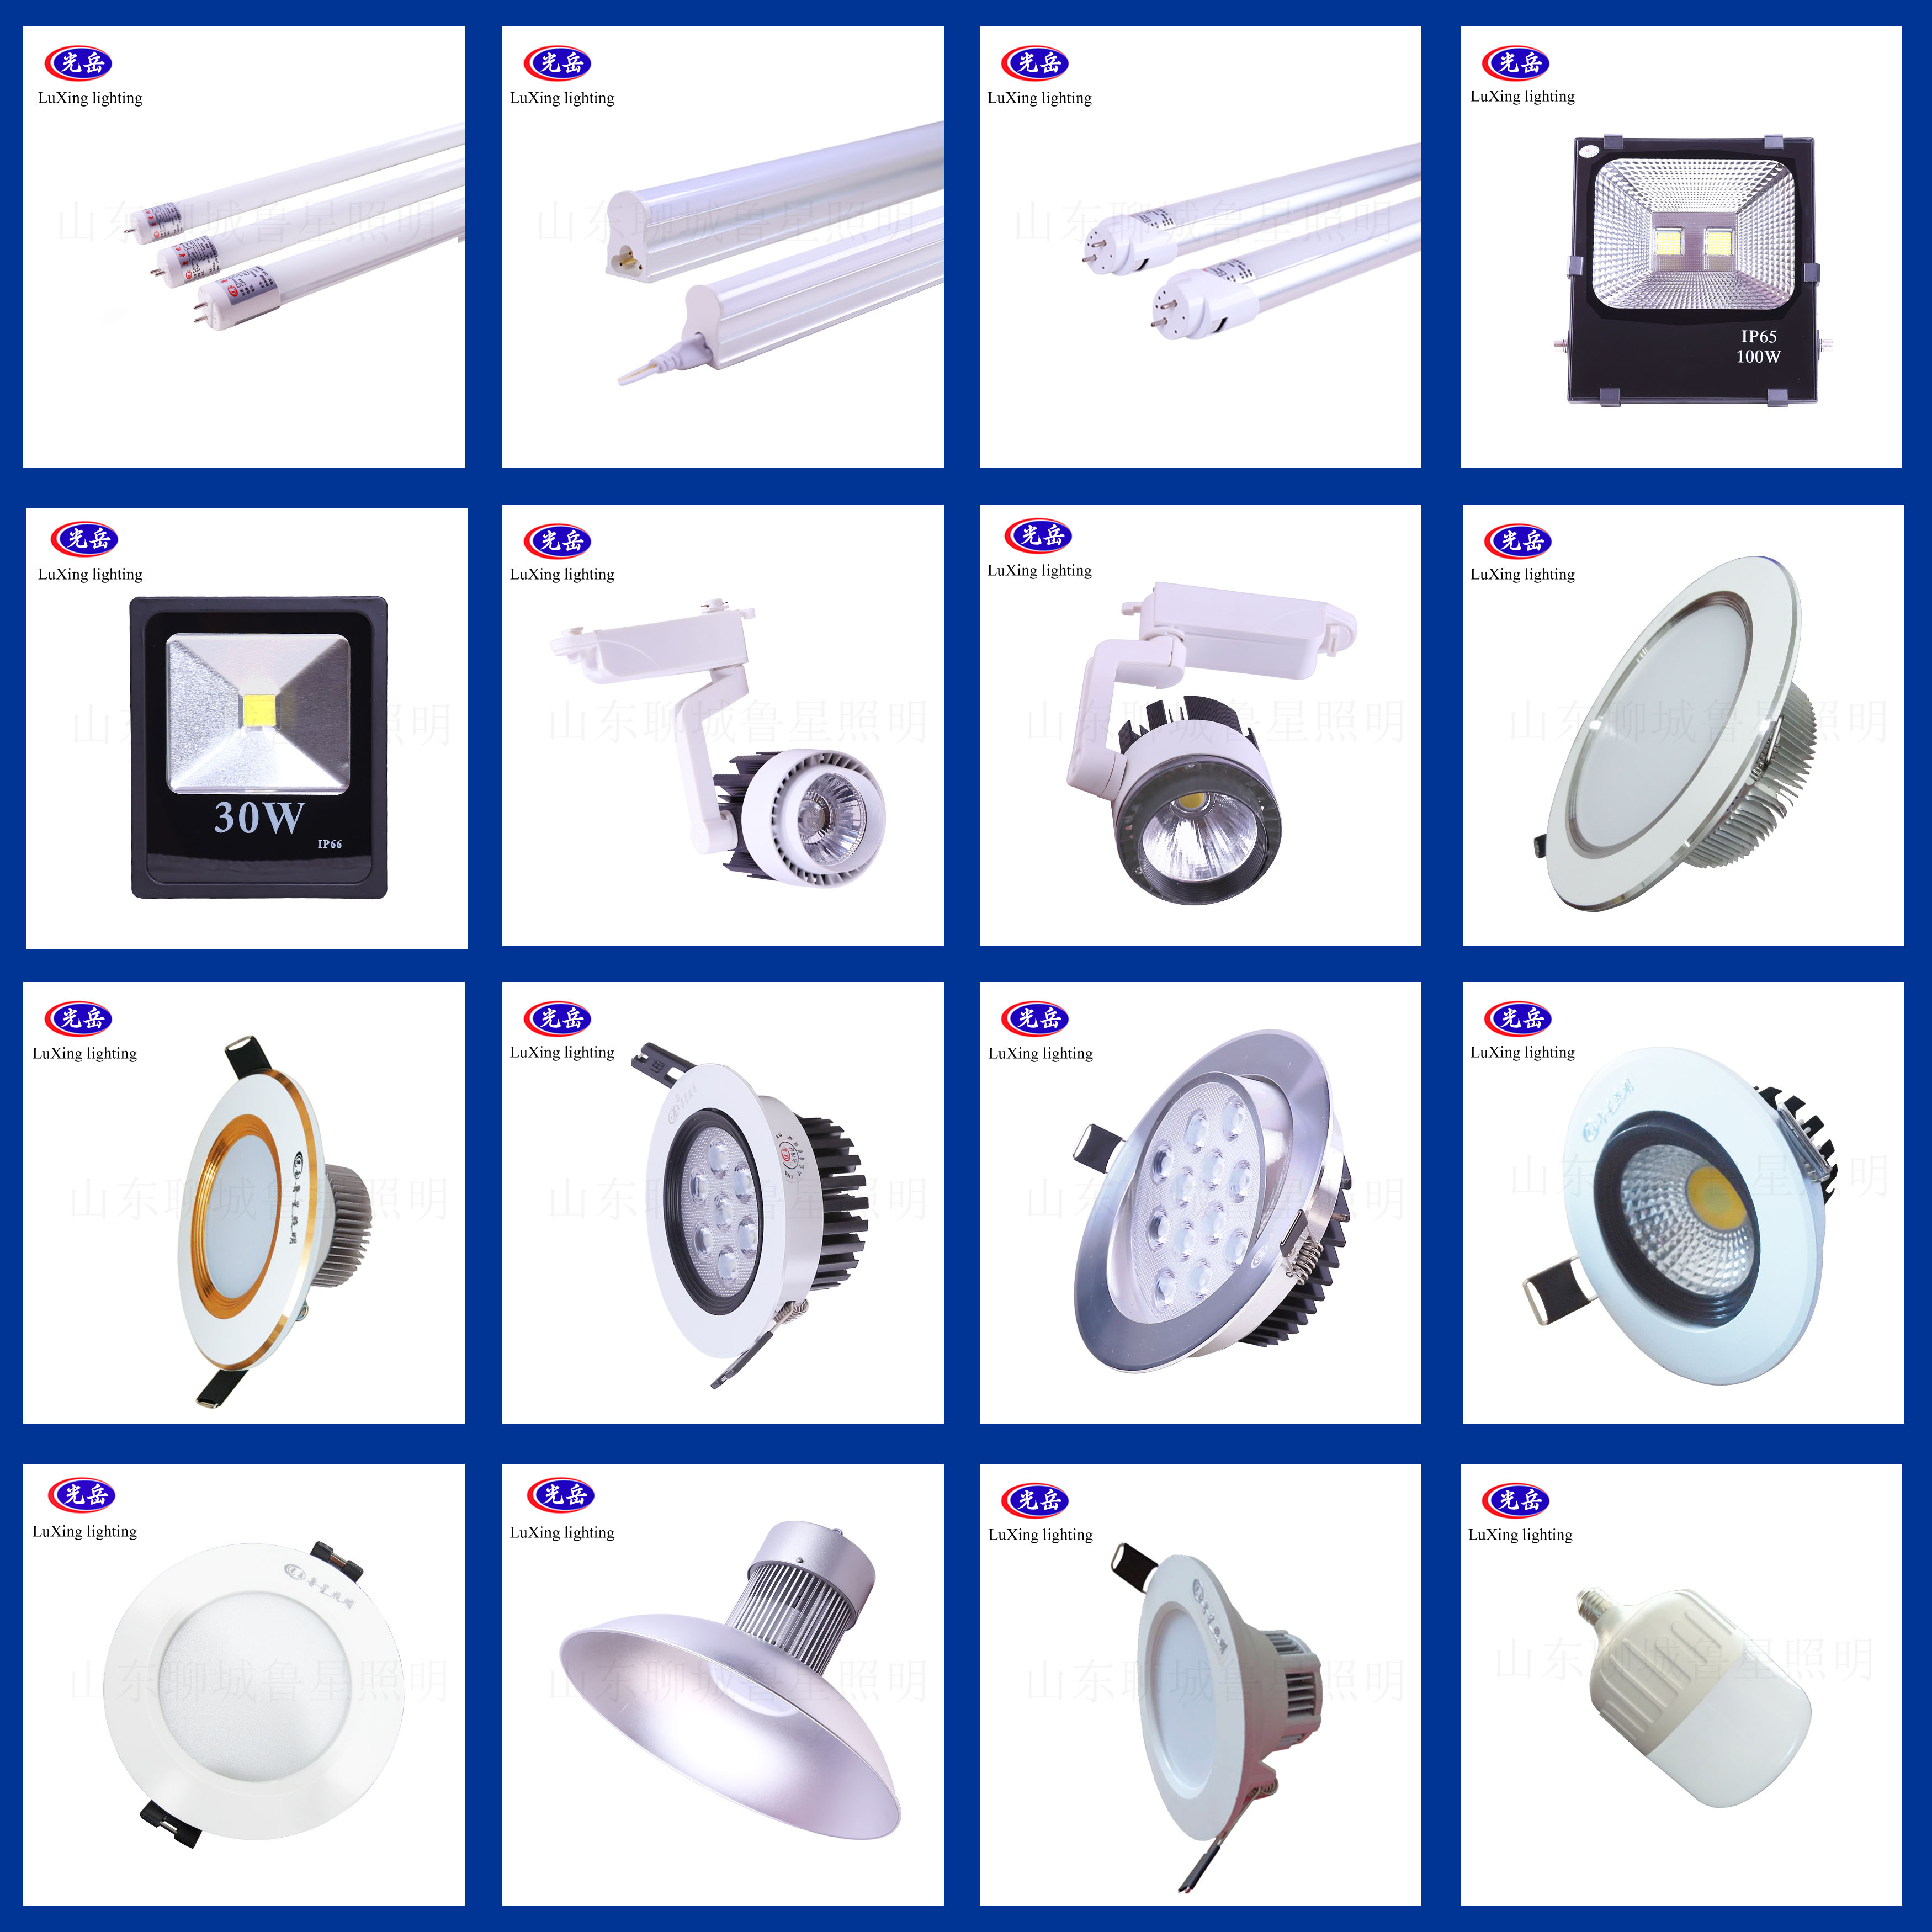 LUXING LIGHTING PRODUCT SPECIFICATION